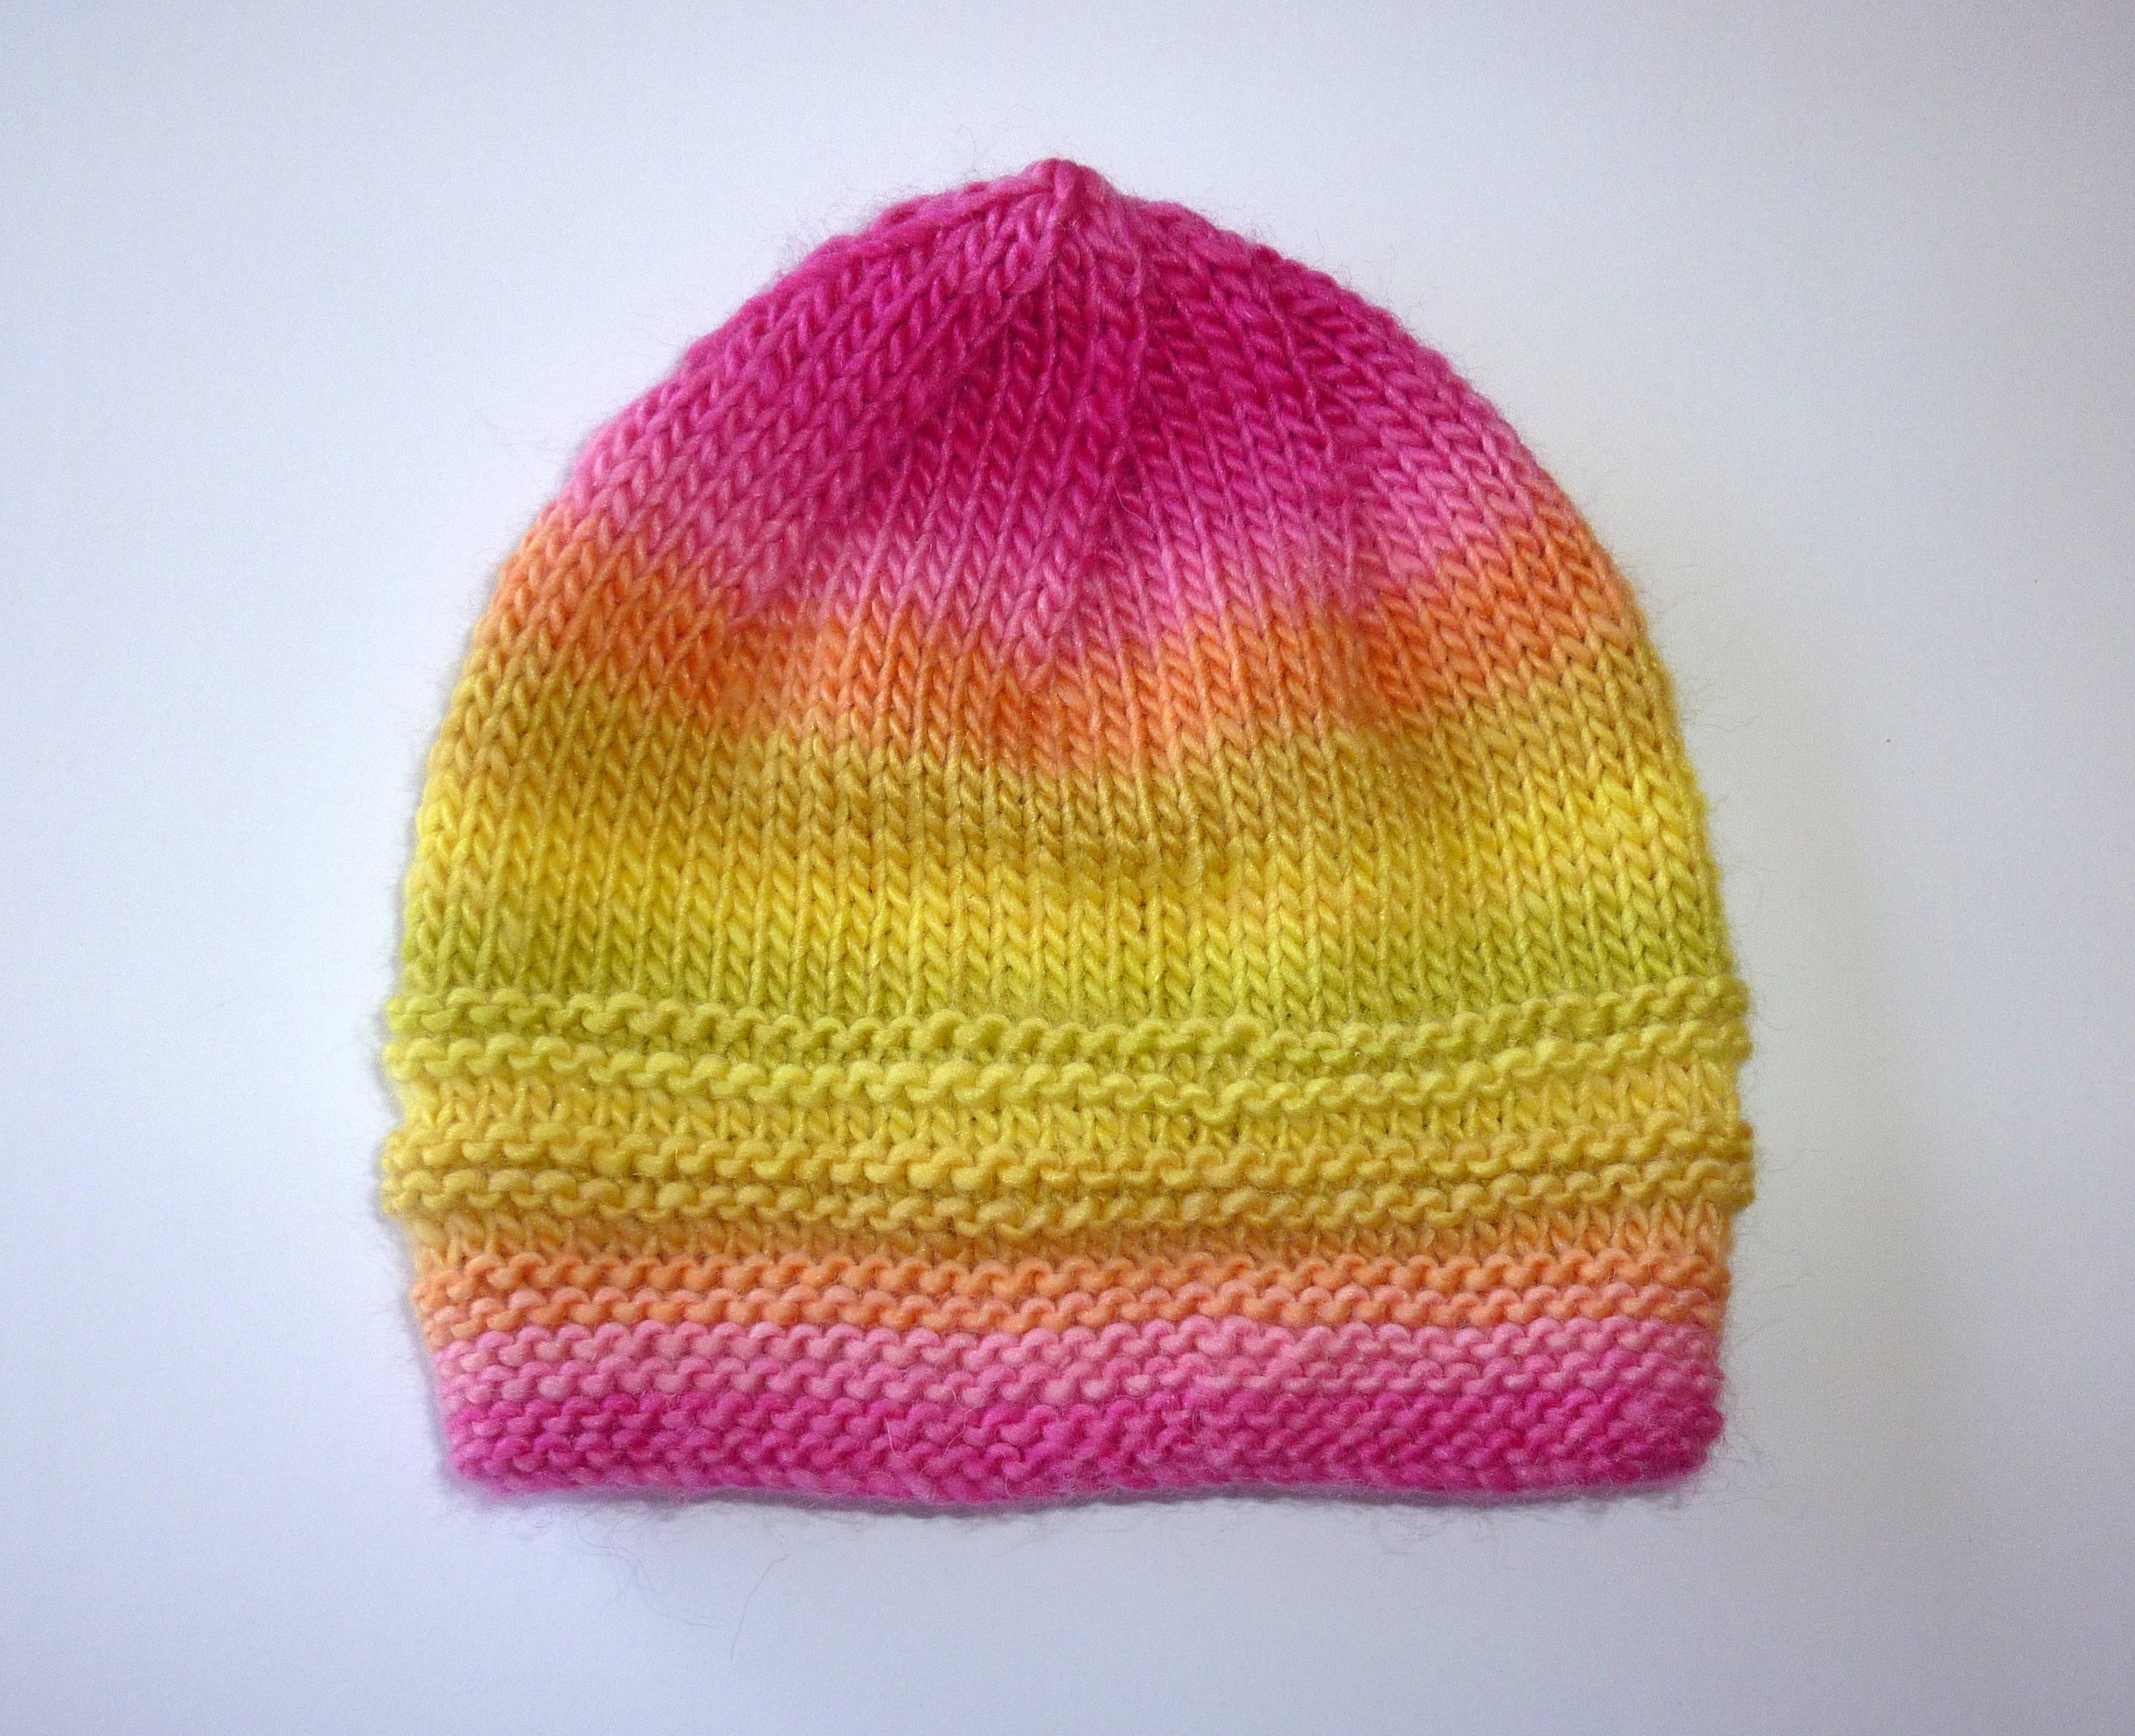 d345405563d Baby Pink and yellow knit hat. Girls knit Beanie. Knit toddler Hat. Neon  Knit hat. Pink and yellow beanie. Soft knitted hat.